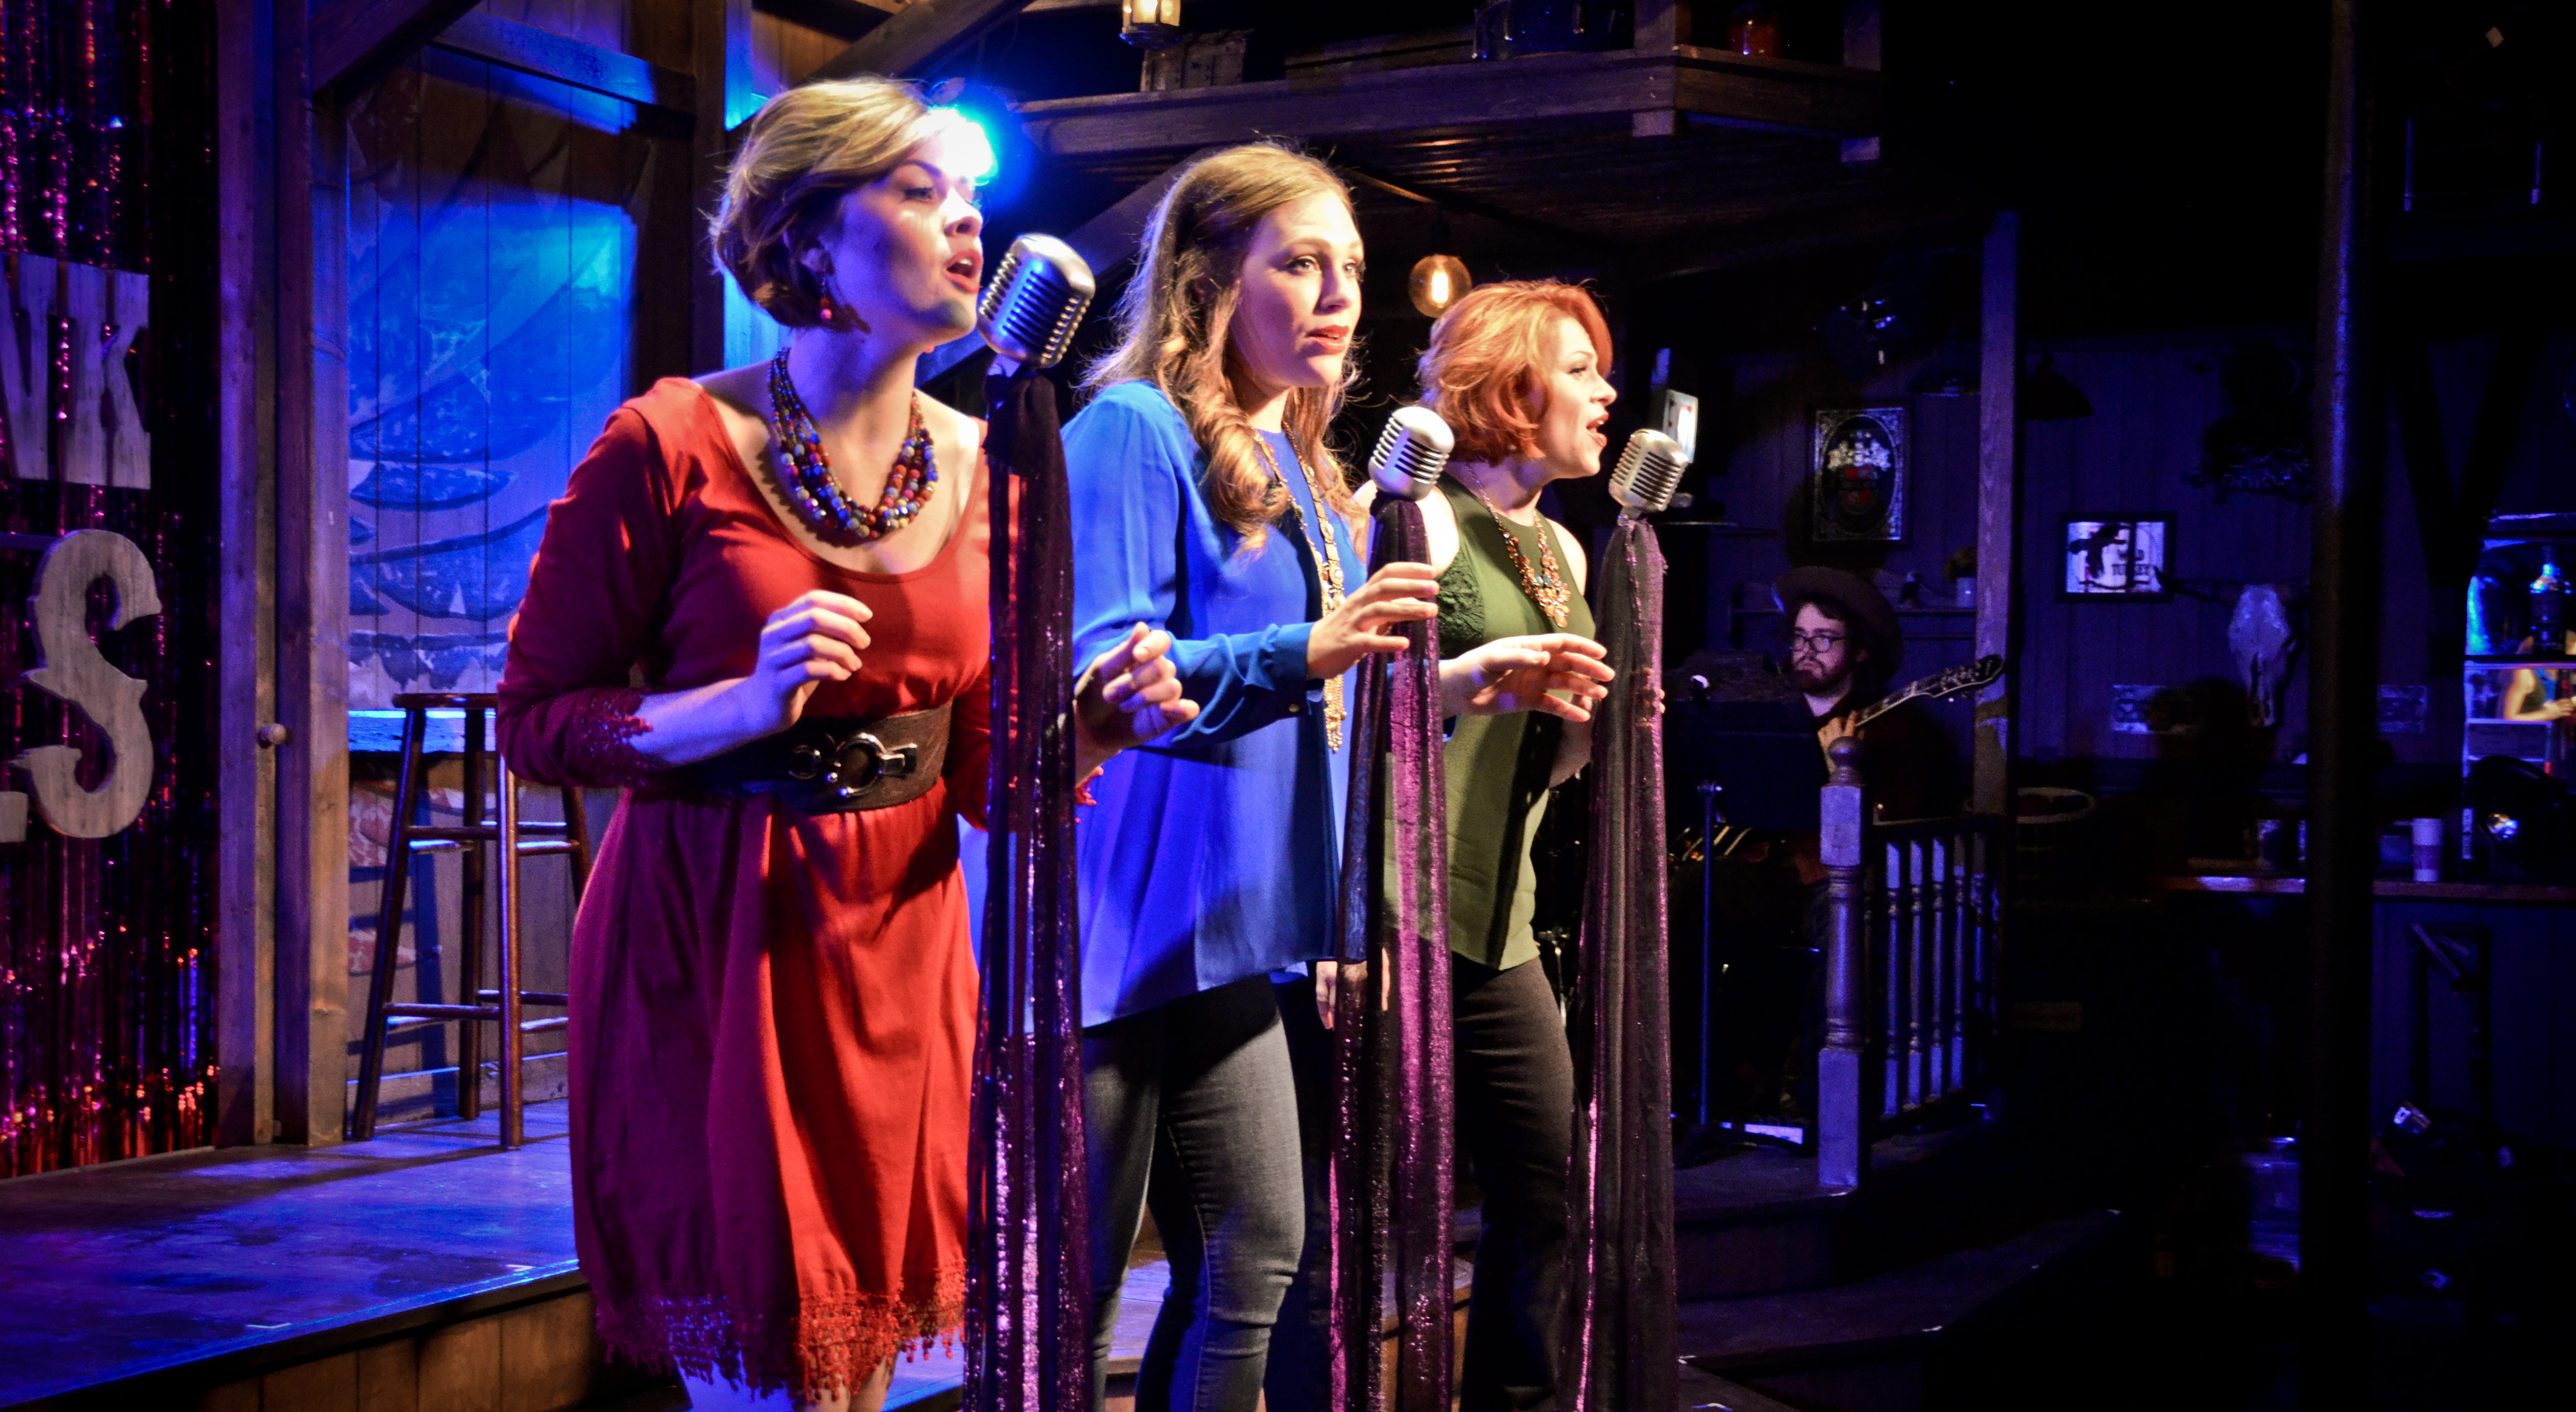 Sour Script Keeps HONKY TONK ANGELS Grounded